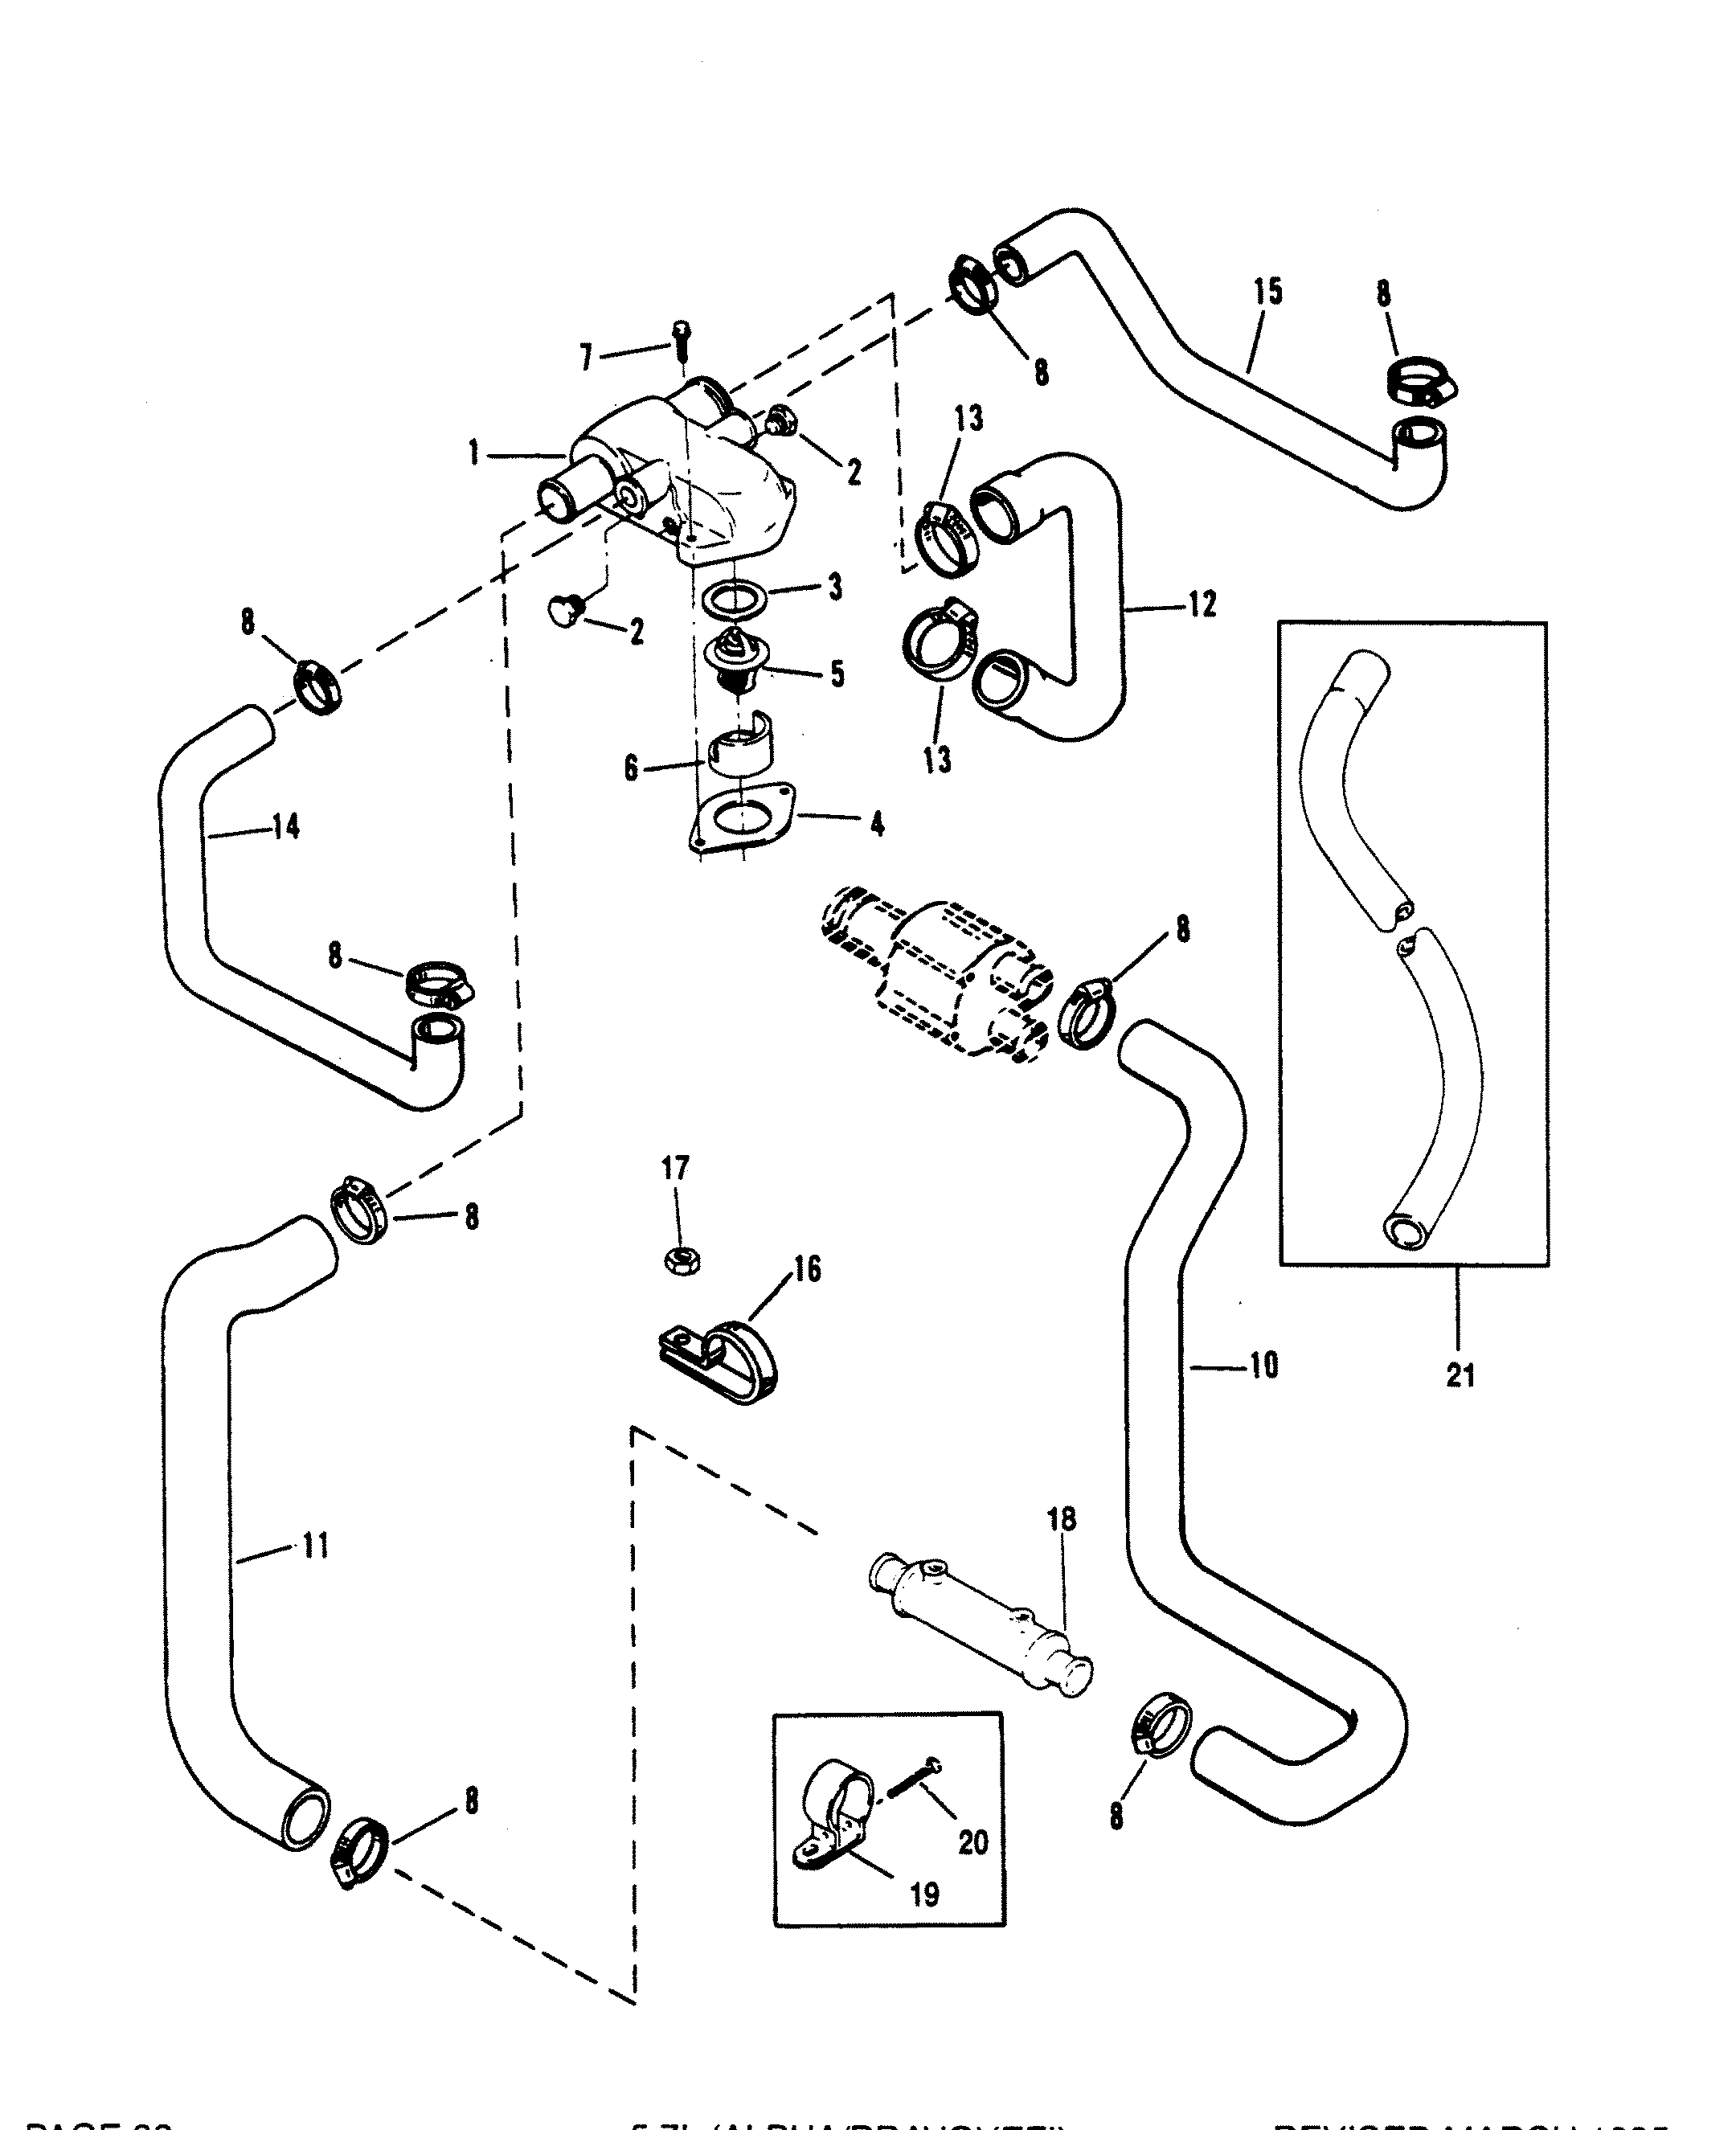 350 mercruiser engine diagram 1997 5 7 vortec engine